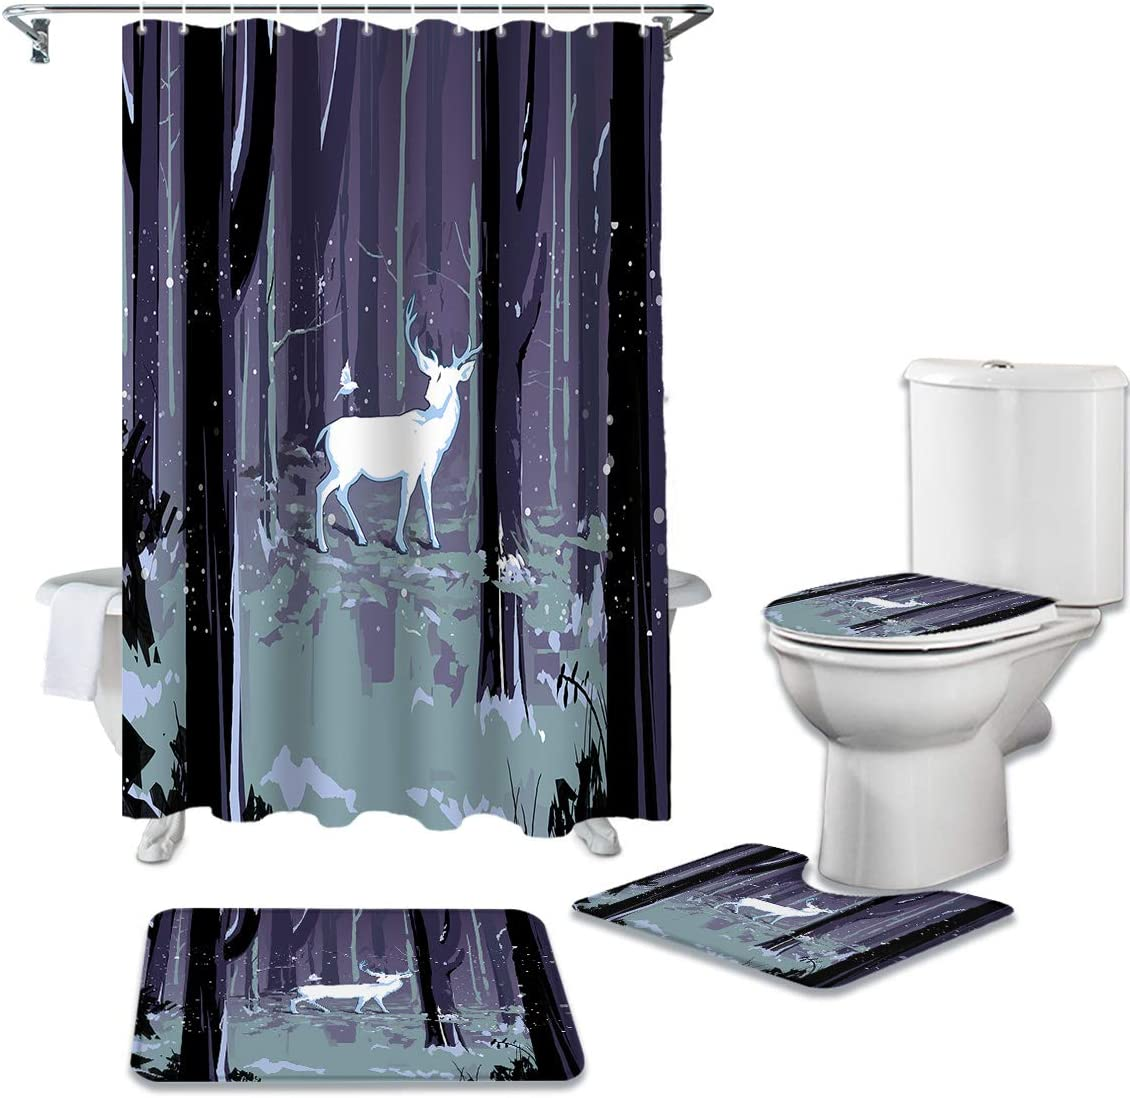 CHARMHOME 4 Piece Large-scale sale Shower Curtain Rug Toilet Sets Non-Slip with Cheap sale